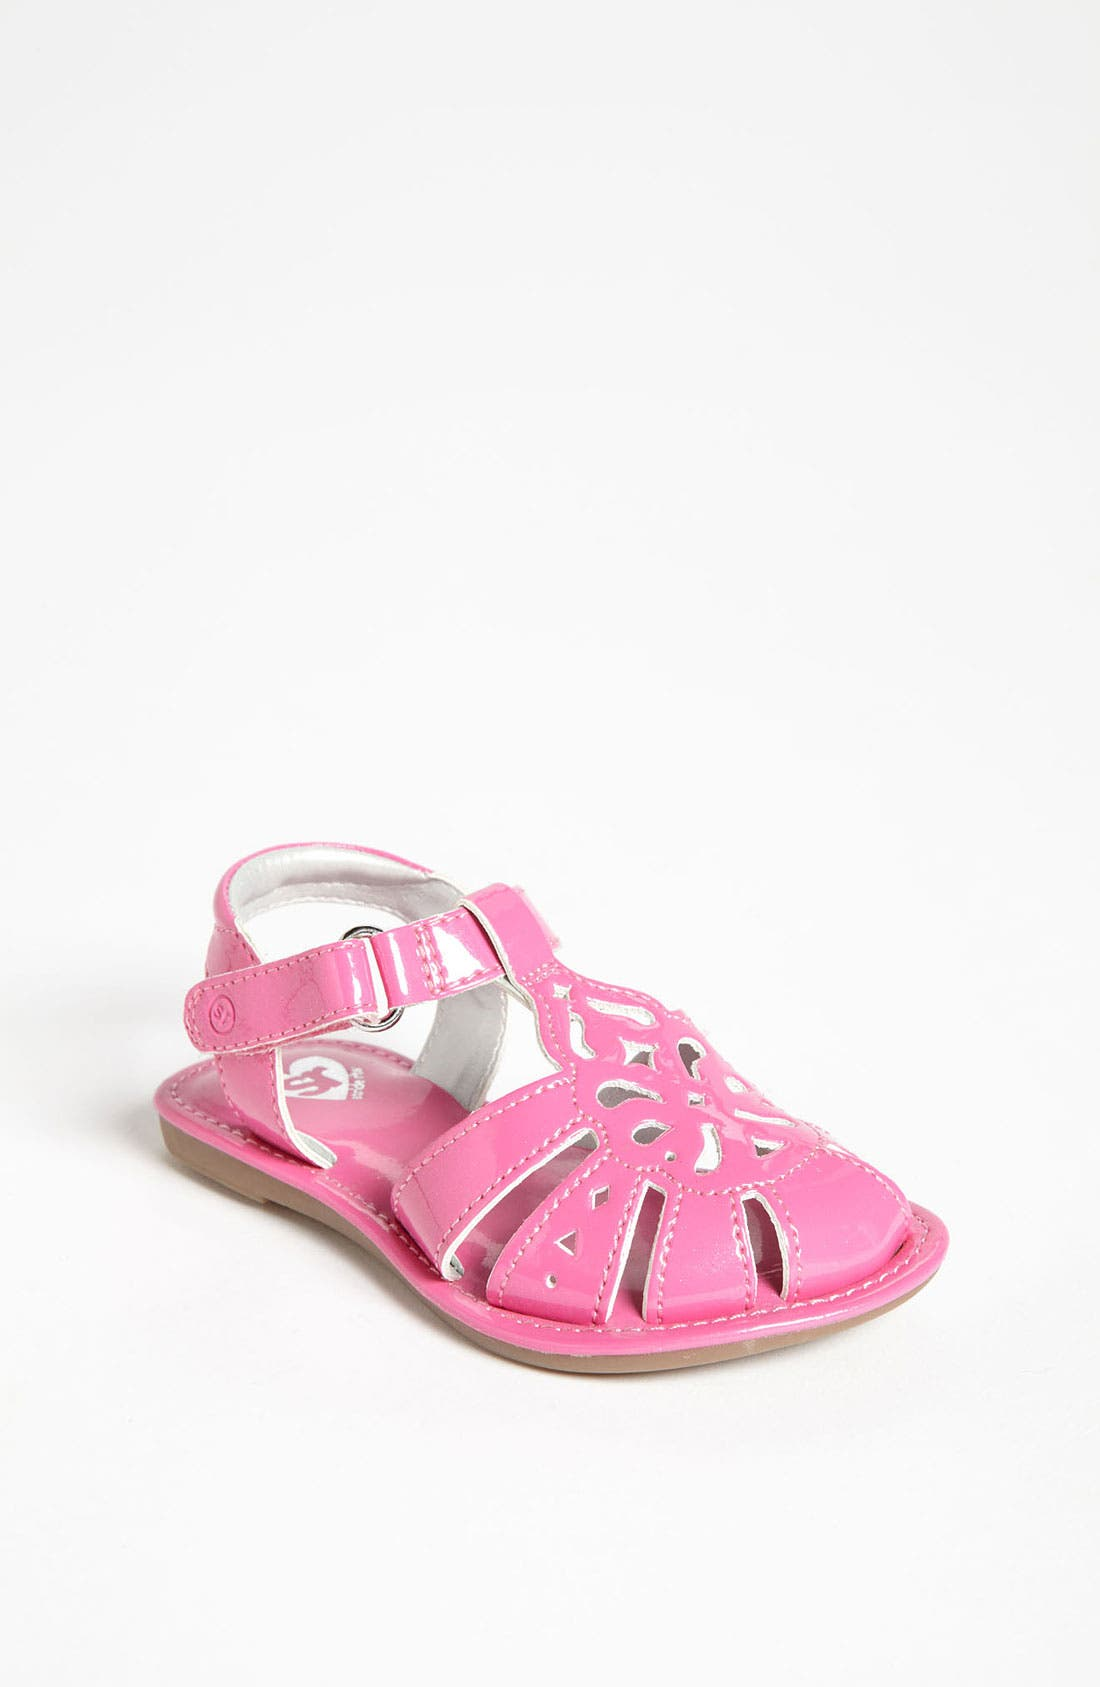 Alternate Image 1 Selected - Stride Rite 'Baby Tessa' Sandal (Baby, Walker & Toddler)